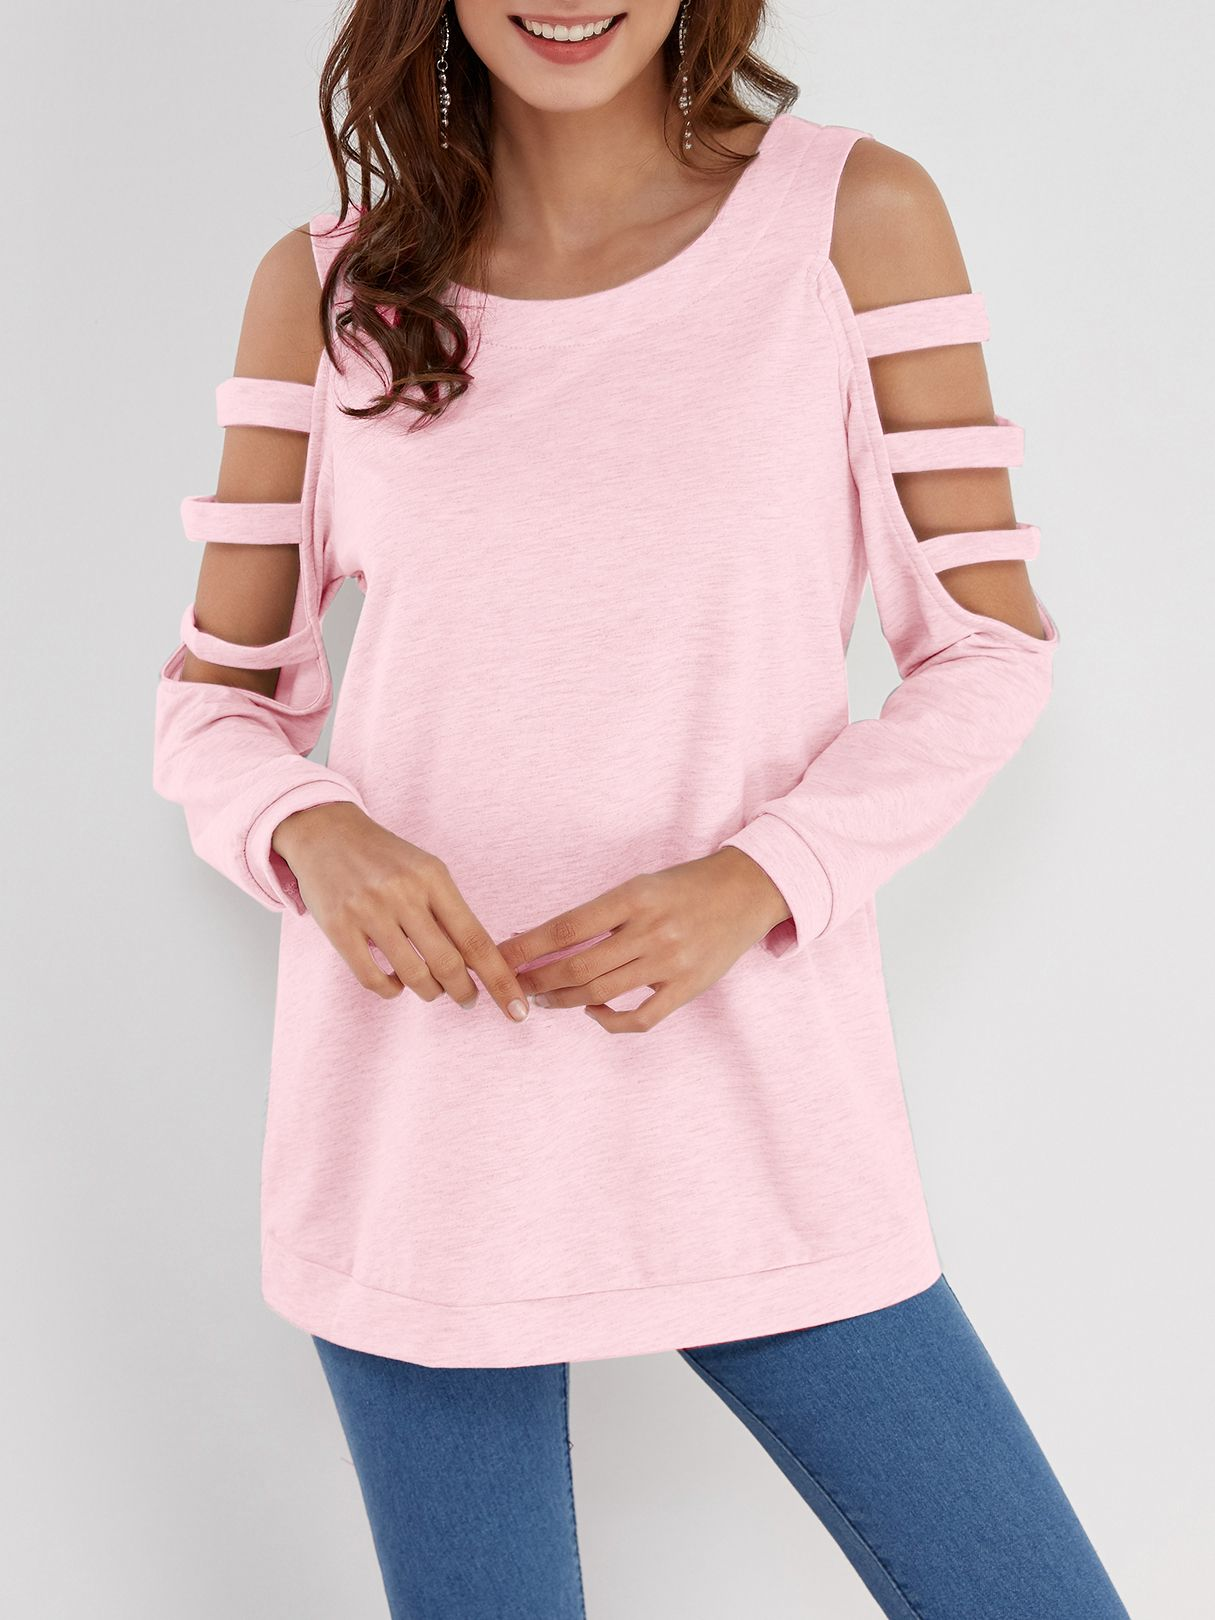 4a02dd51aa806d Pink Solid Color Cold Shoulder Long Sleeves T-shirt - US$13.95 in ...